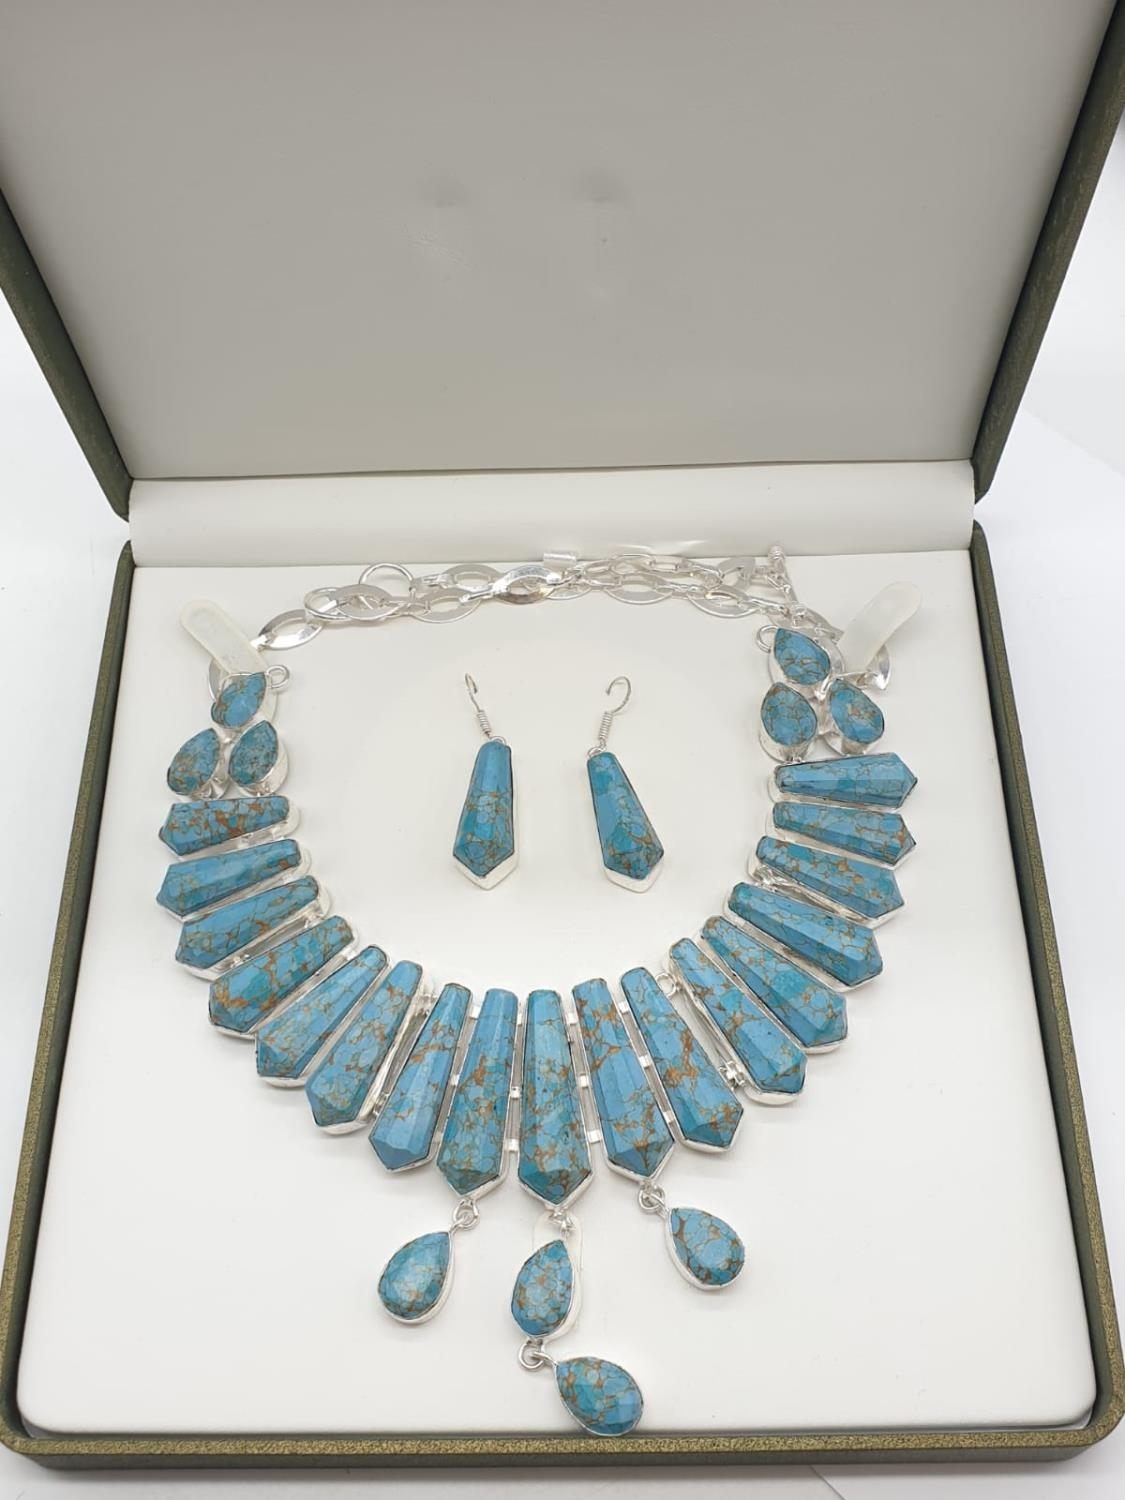 A Pharaonic style necklace and earrings set with light brown-gold veined turquoise obelisks and - Image 24 of 24